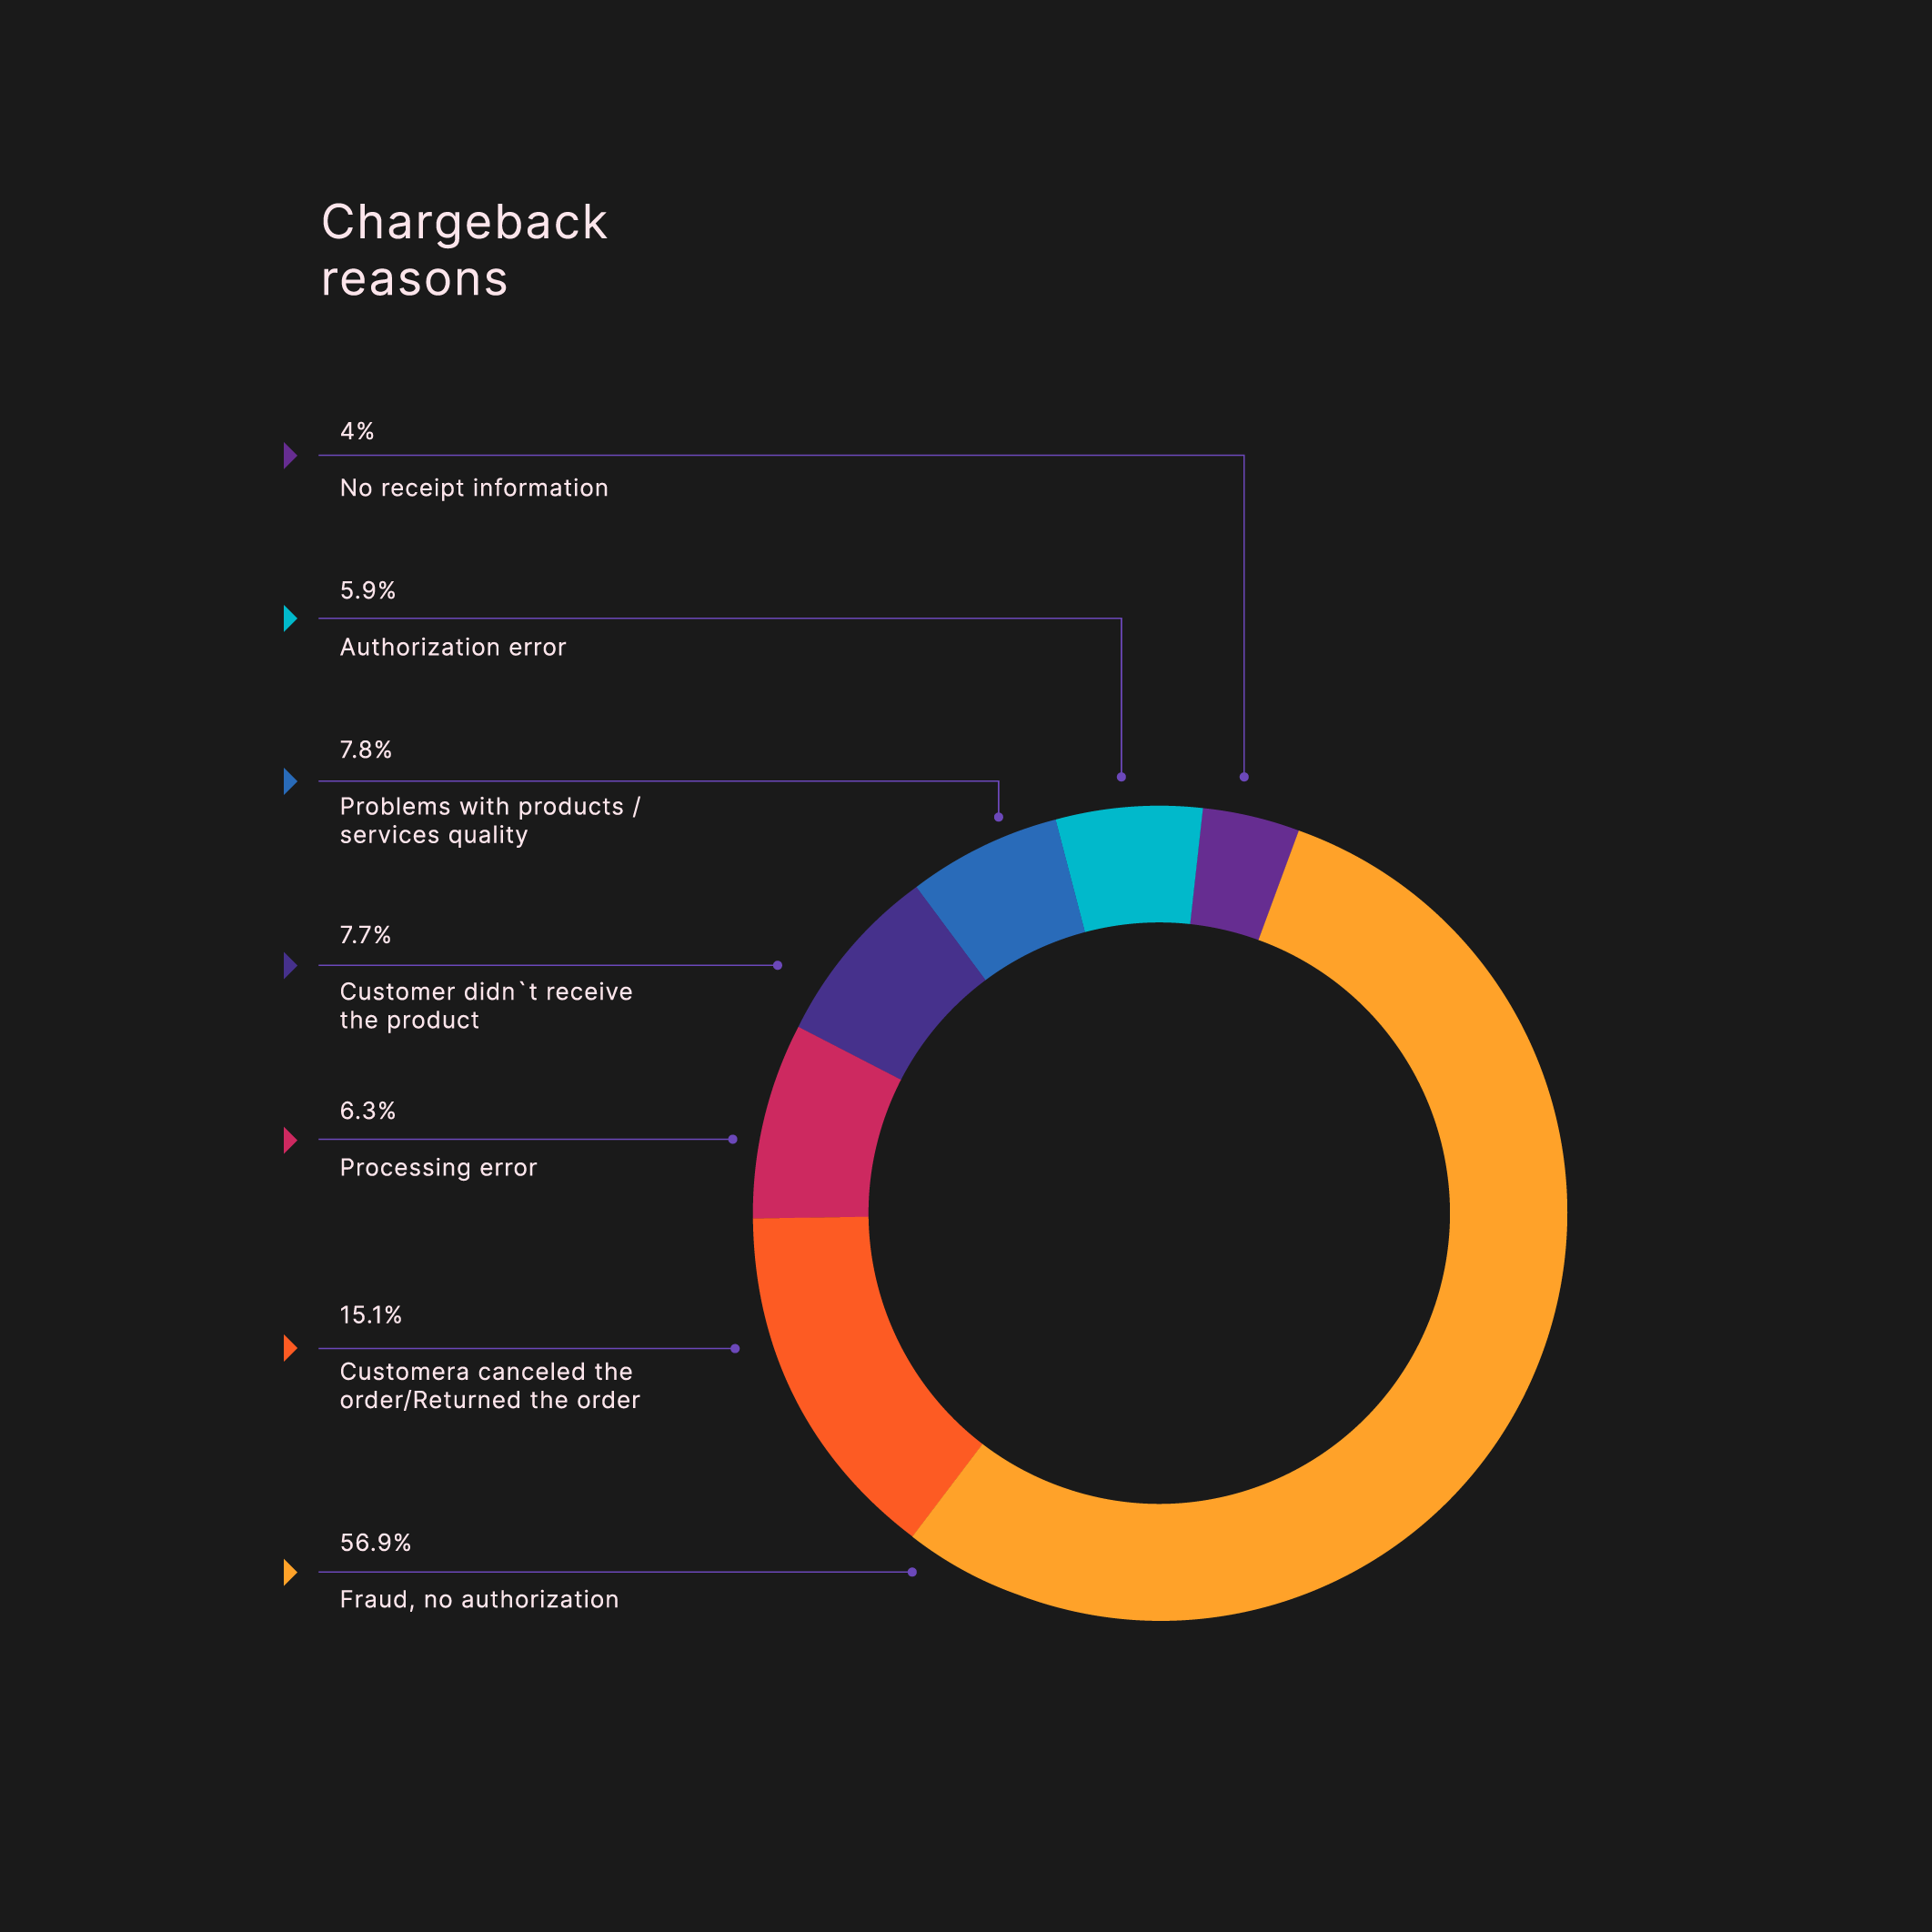 Infographic: reasons for chargebacks